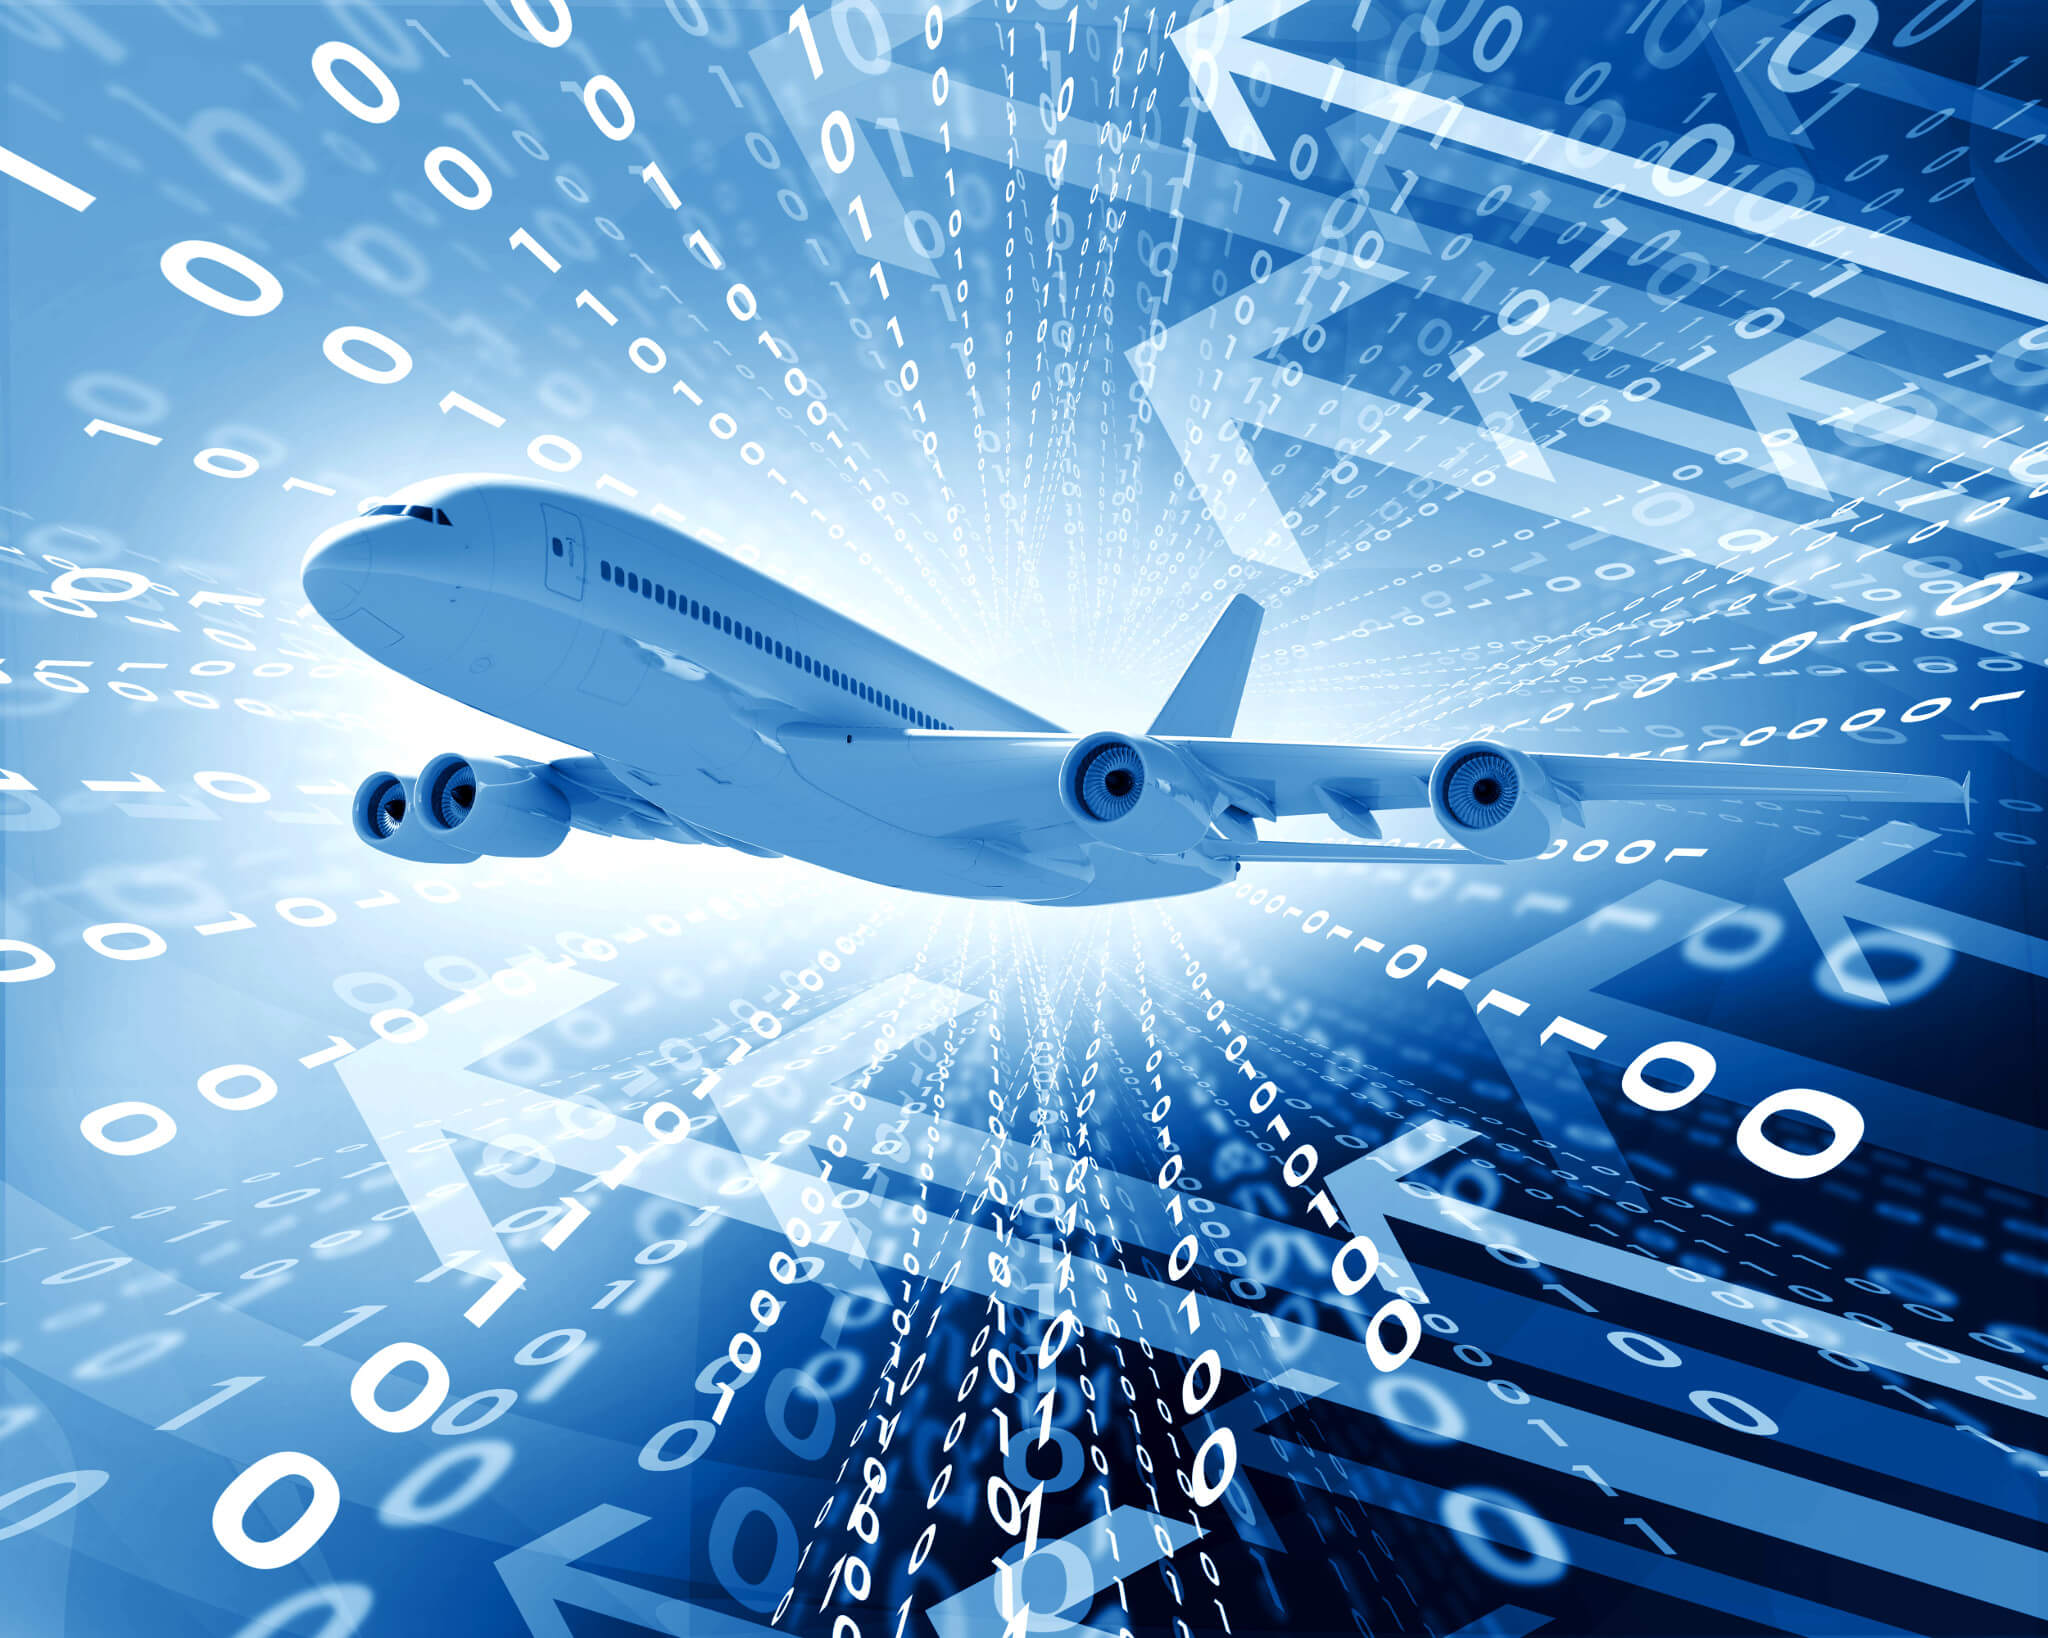 Airplanes generate massive amount of data.